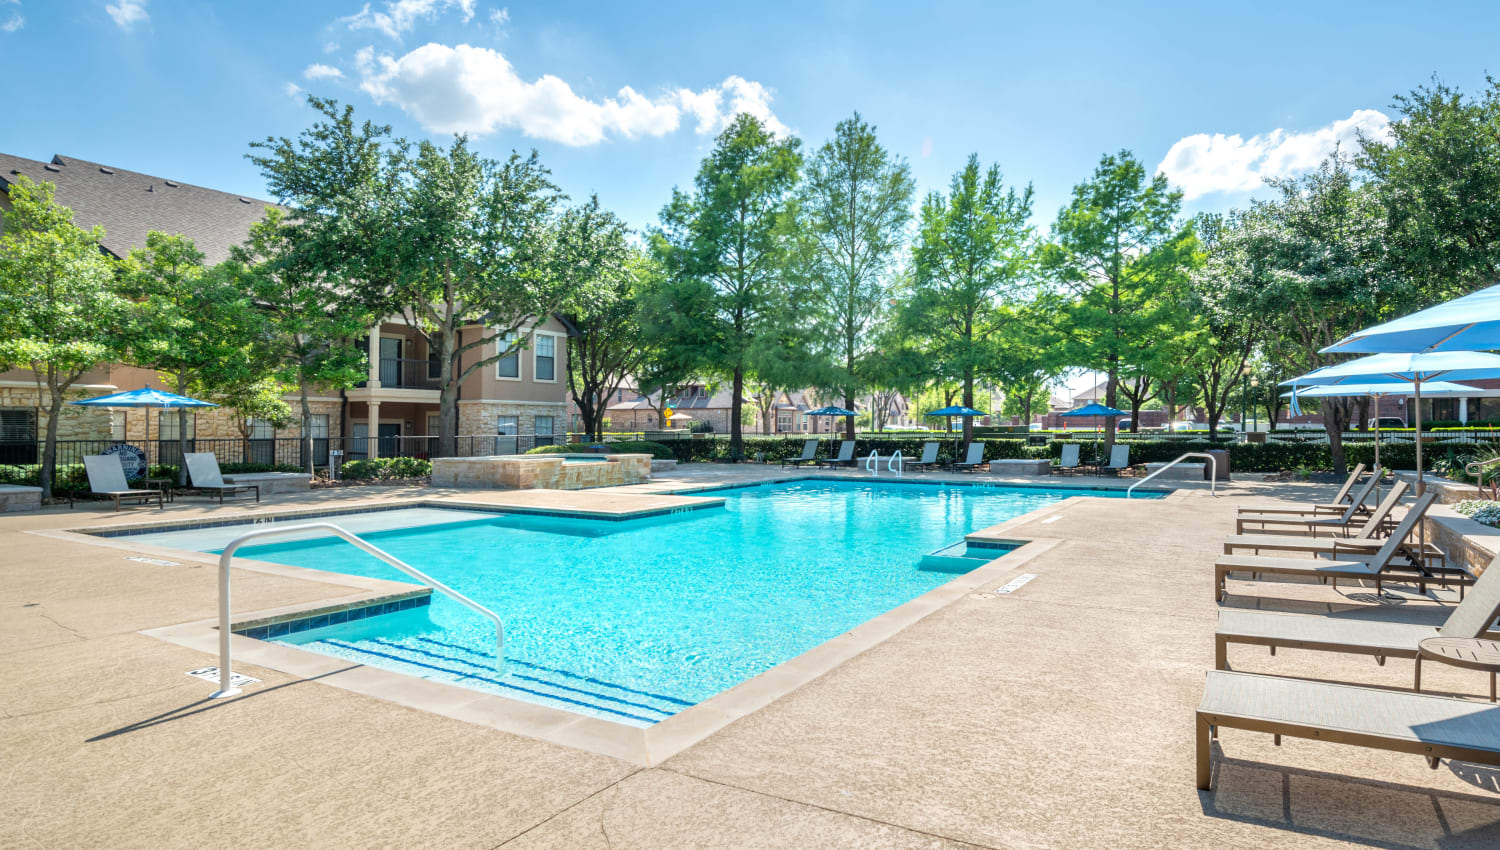 Swimming pool flanked by mature trees at Olympus Town Center in Keller, Texas